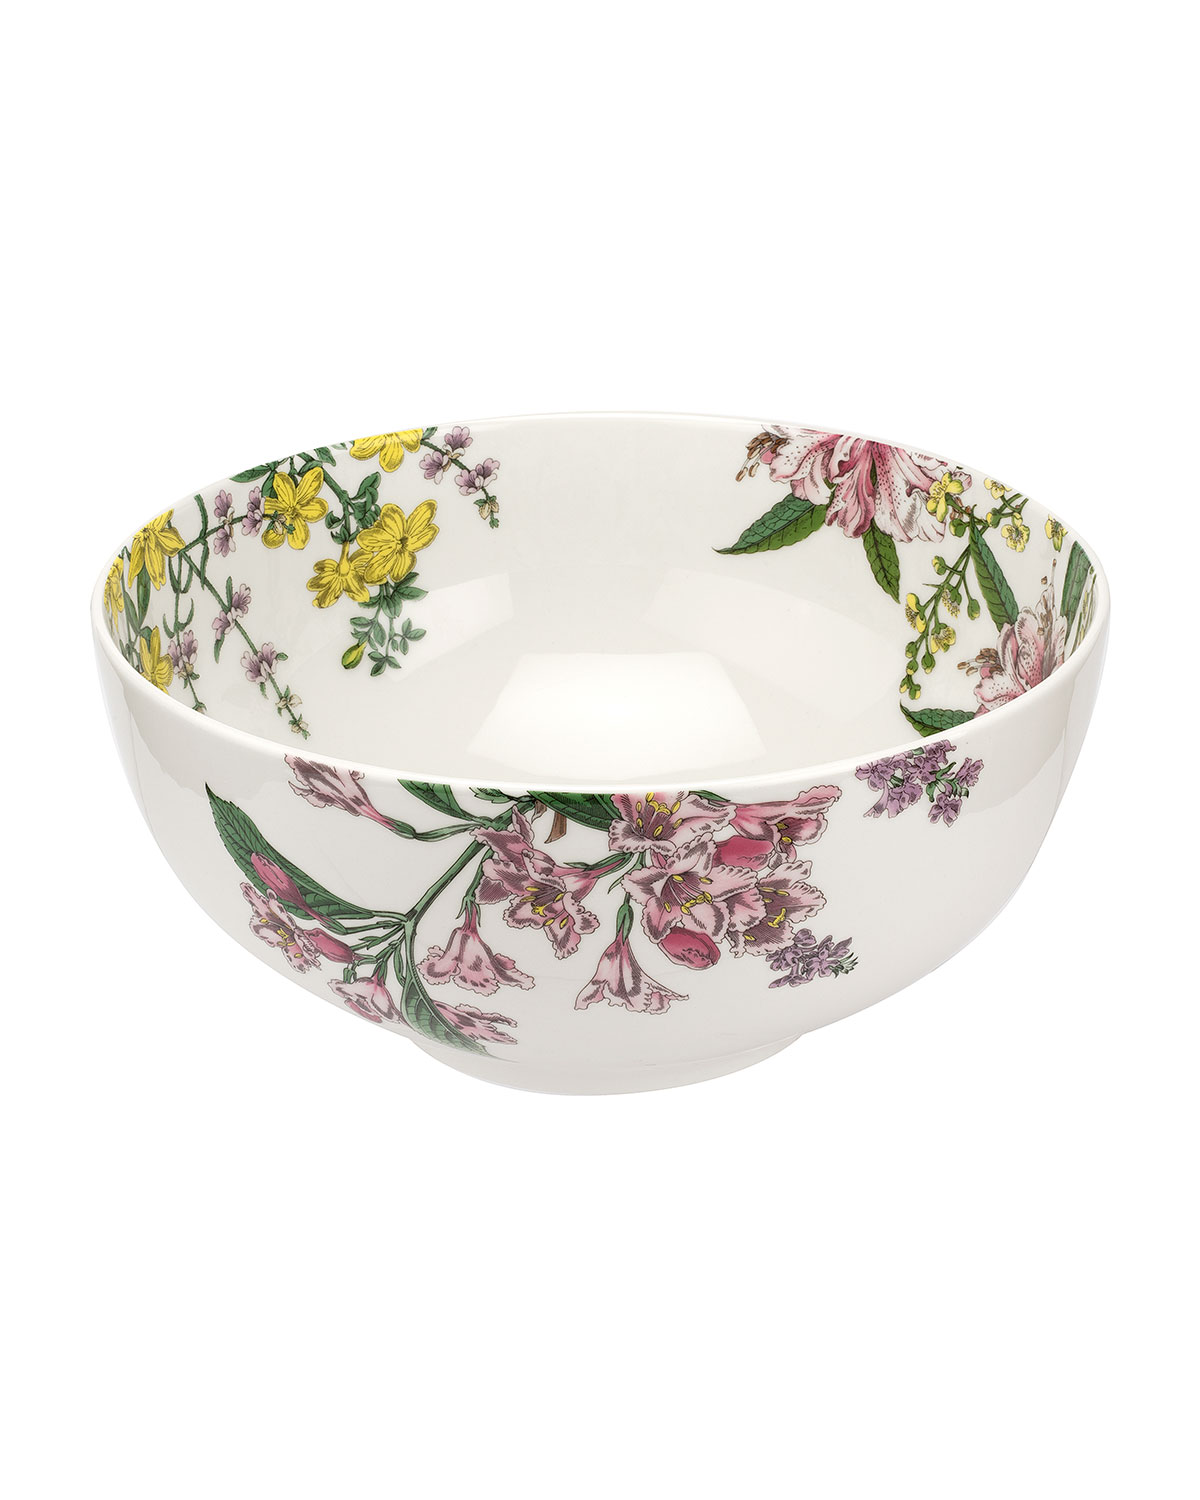 "Spode Stafford Blooms 10.75"" Bowl"